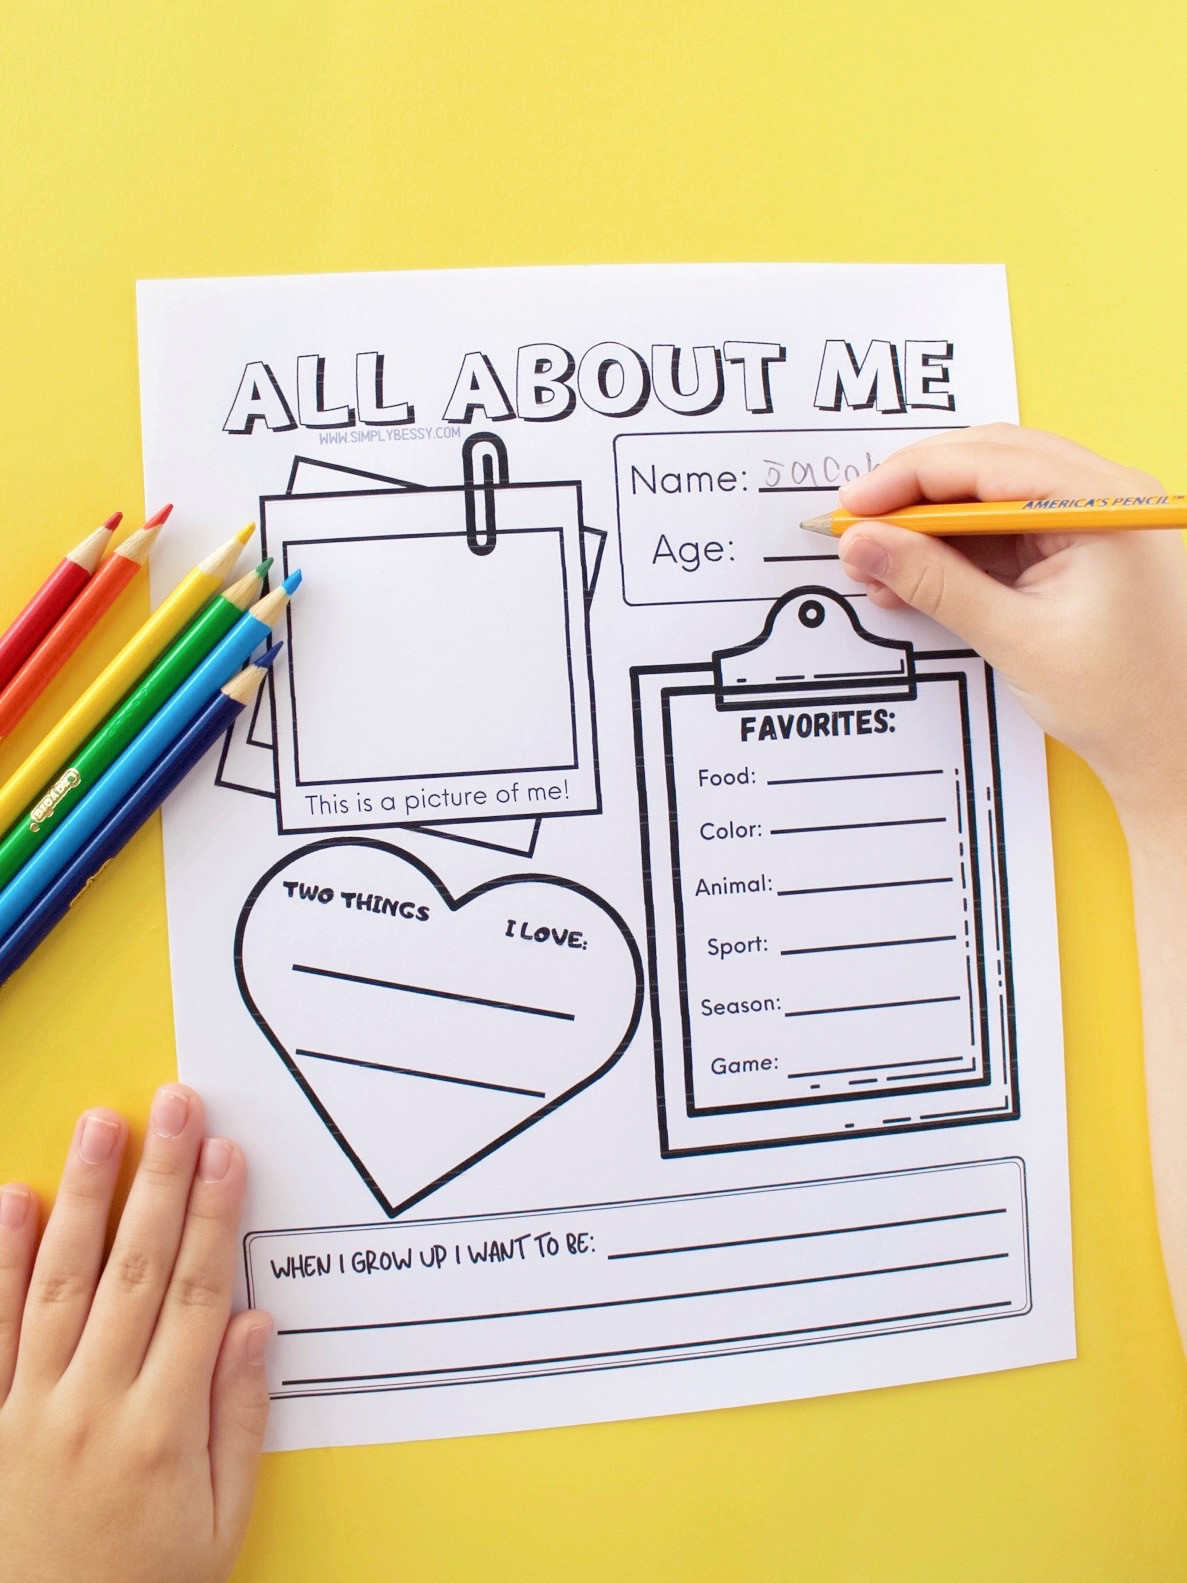 Printable All About Me Worksheet All About Me Worksheet Free Printable